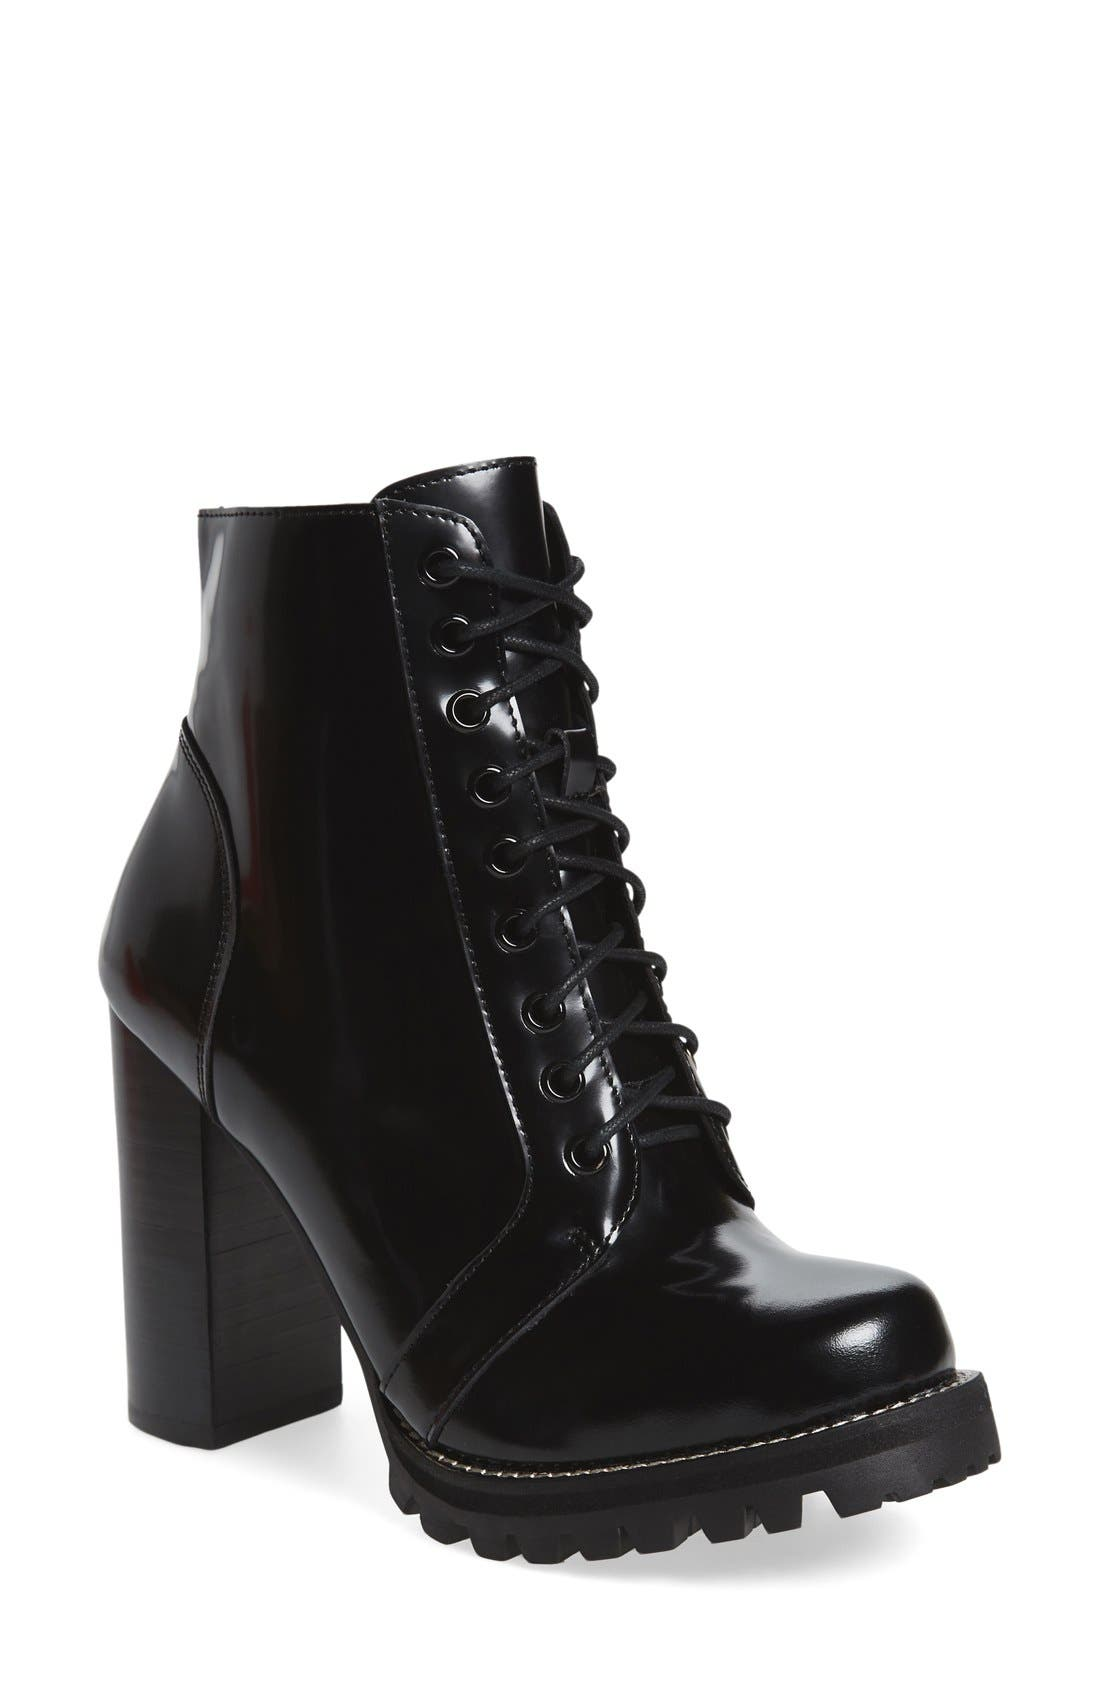 Jeffrey Campbell Women S Boots